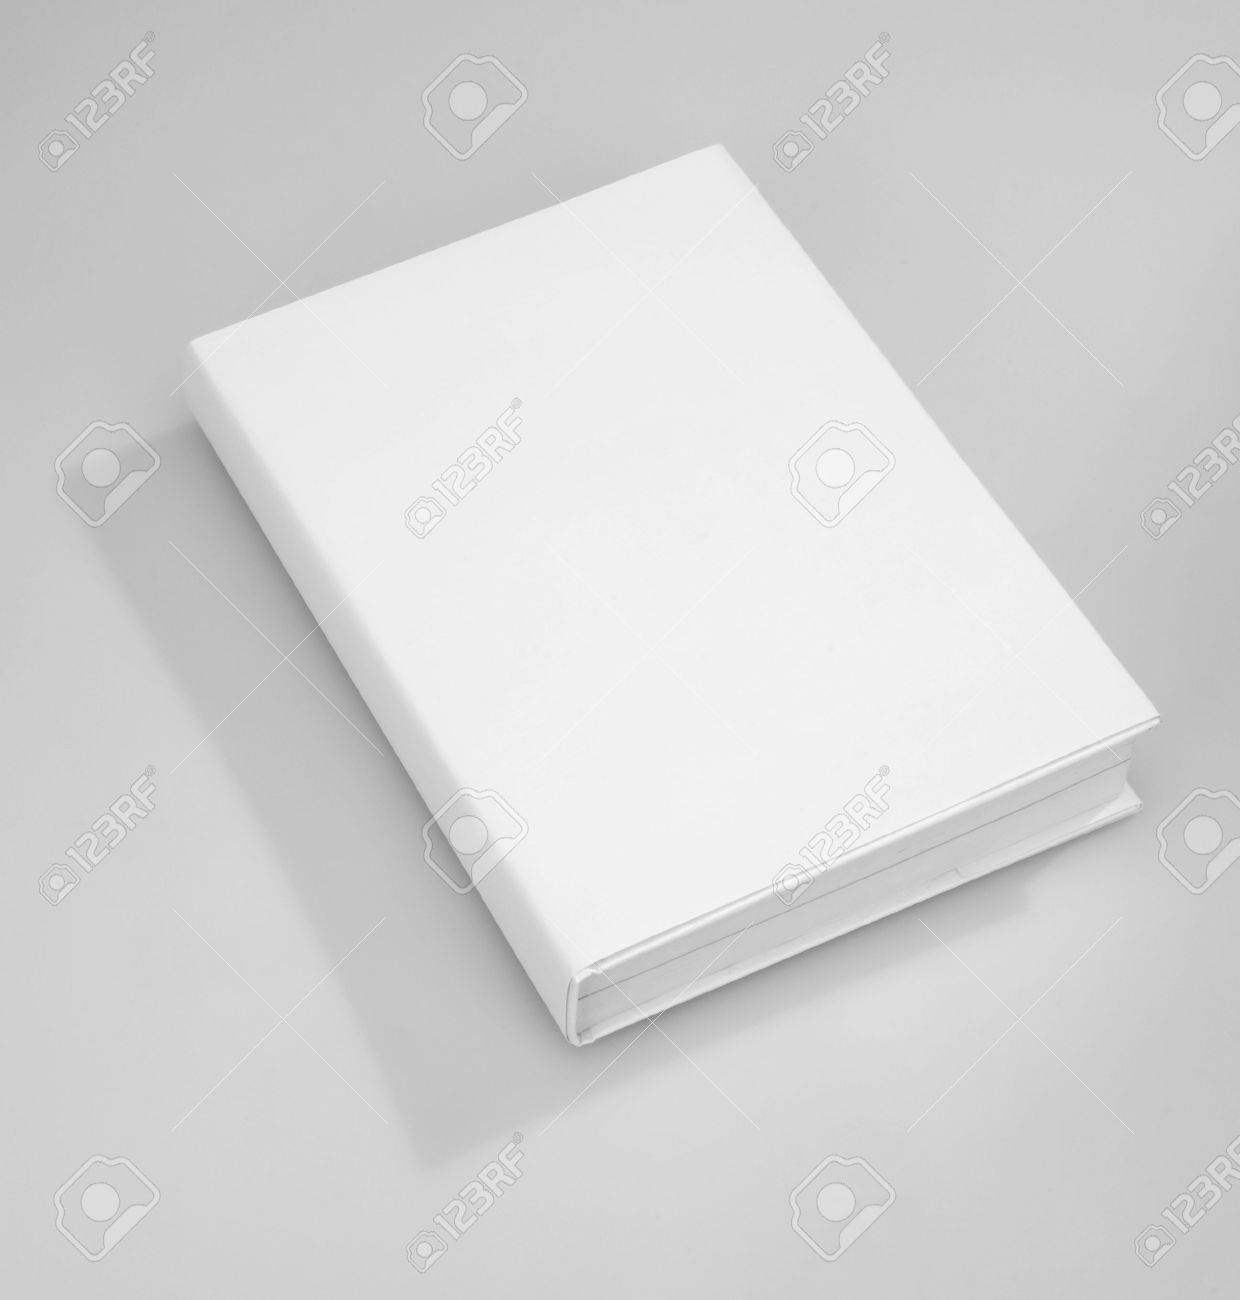 Blank book cover white Stock Photo - 6717140